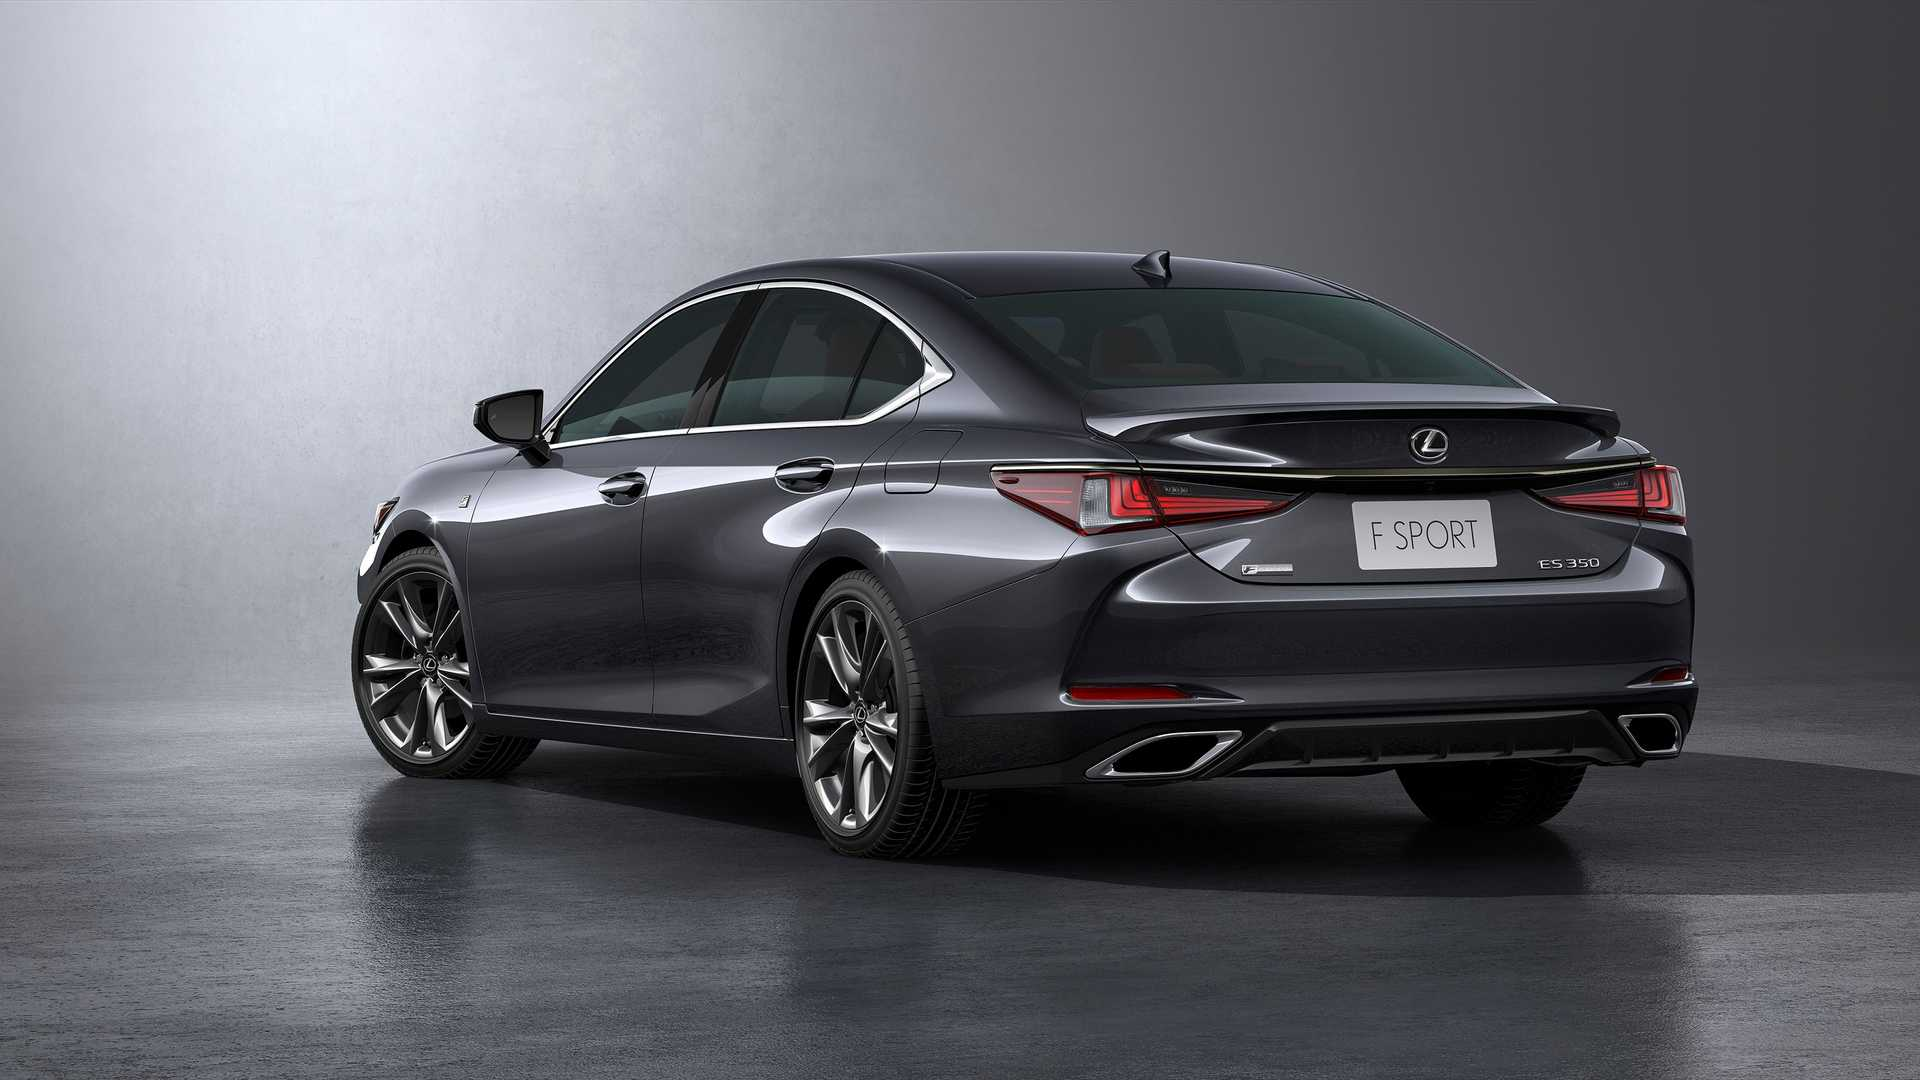 2022-lexus-es-F Sport-rear-view.jpg